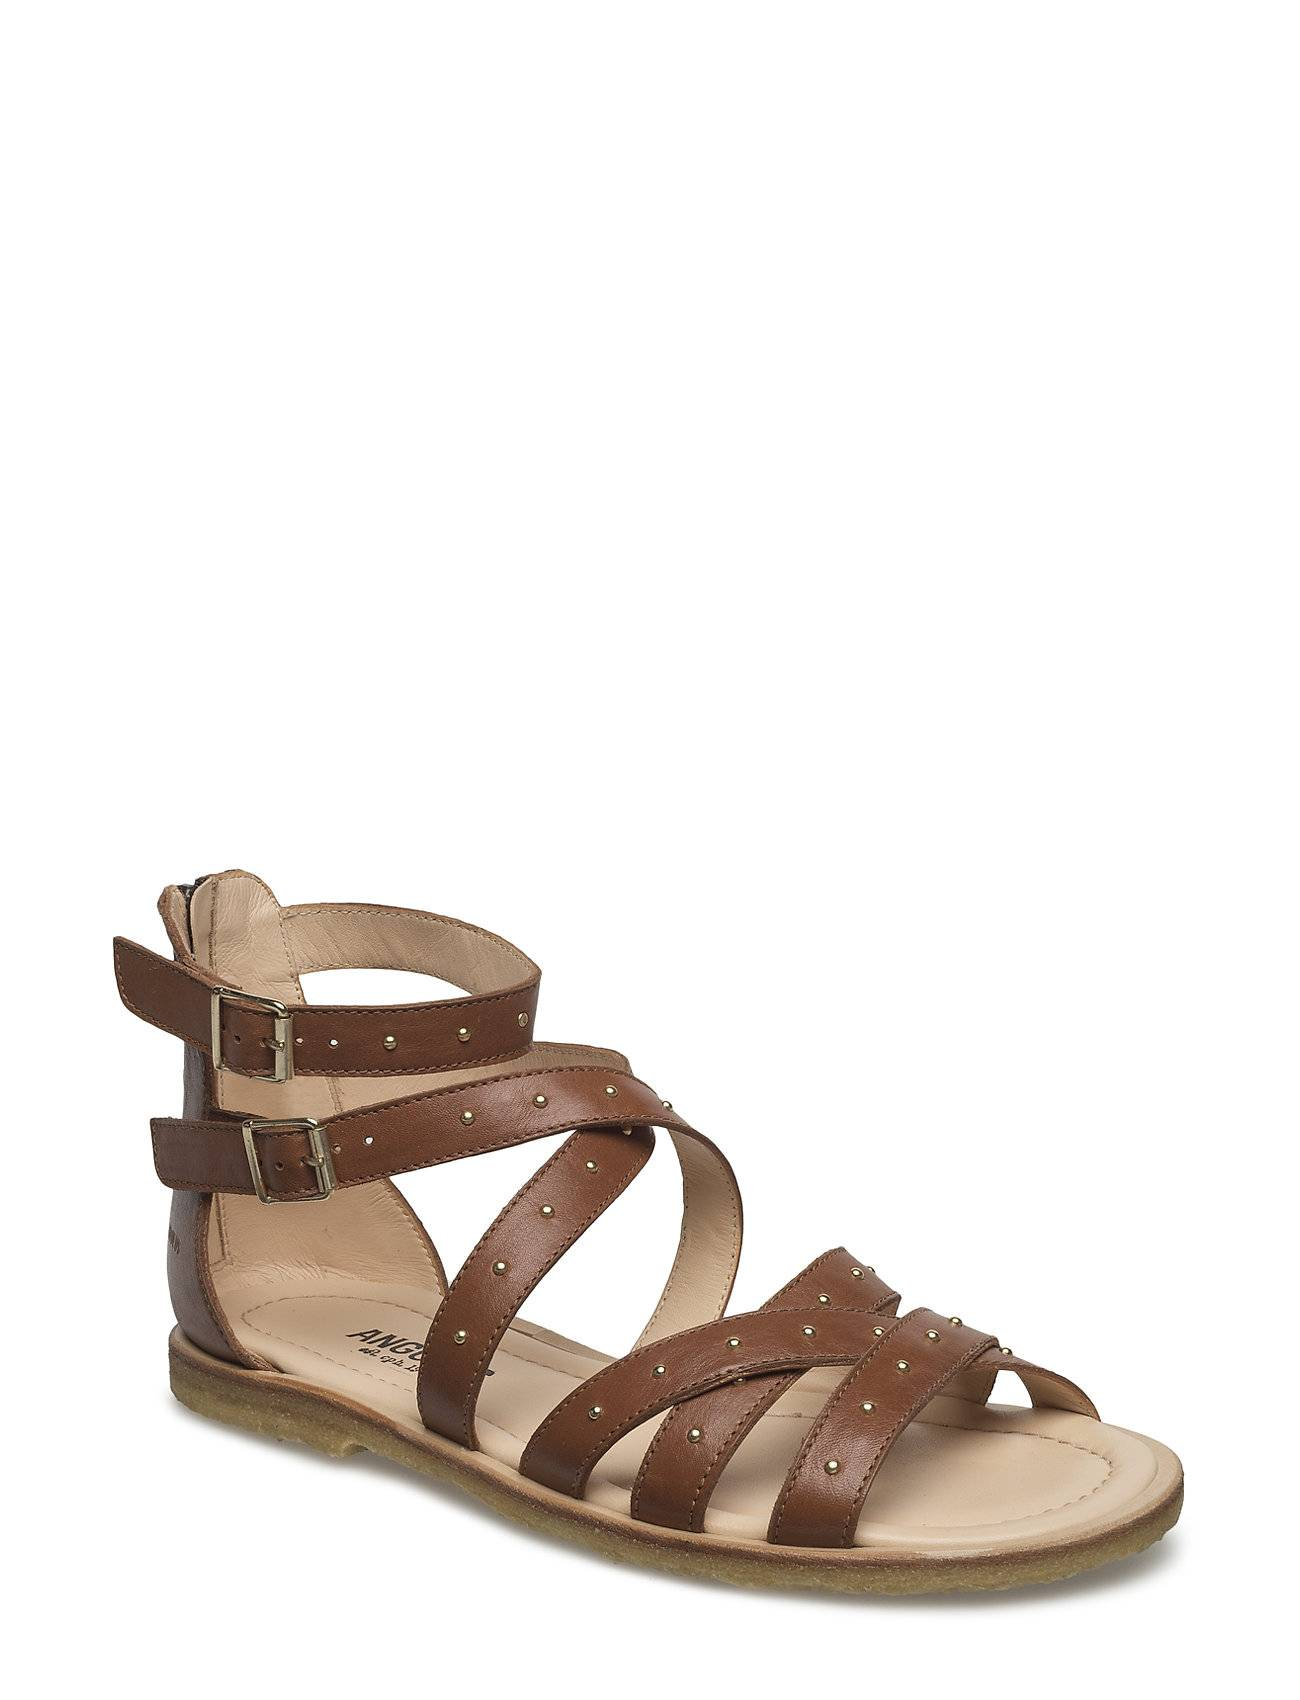 ANGULUS Sandal With Buckles, Zipper And Rivets